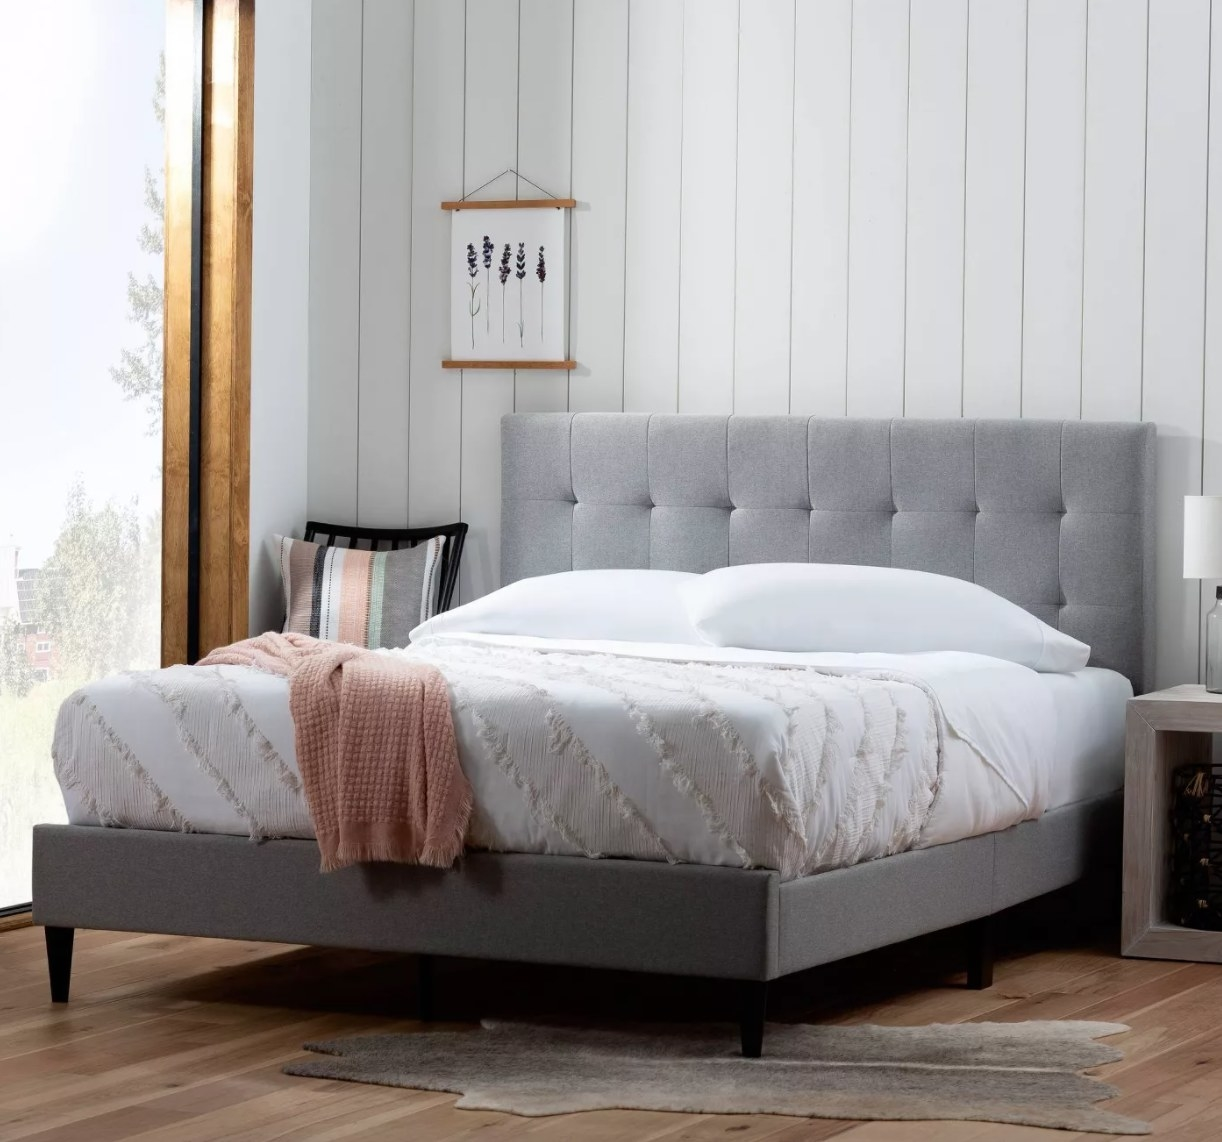 A light gray upholstered bed frame with tufted headboard